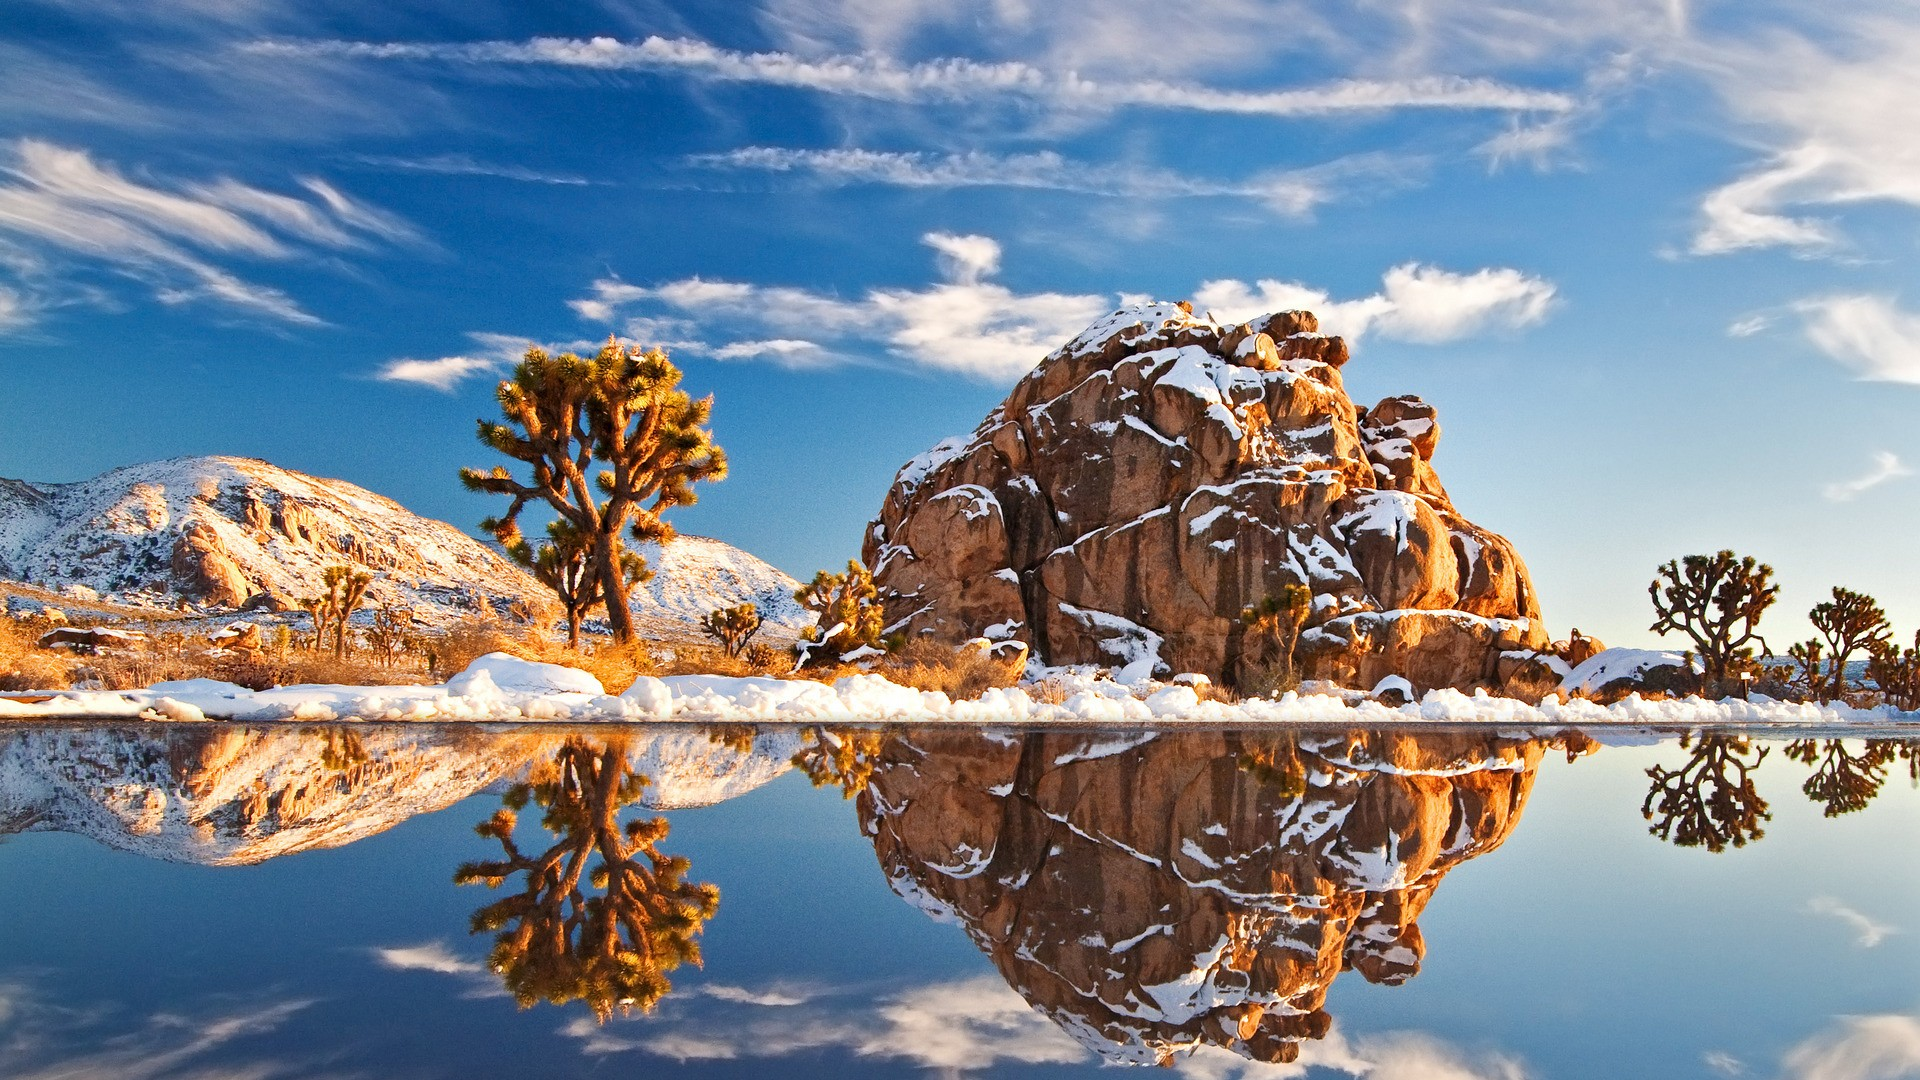 Joshua Tree: 28 Stunning Photos From America's Most Buzzed About National Park